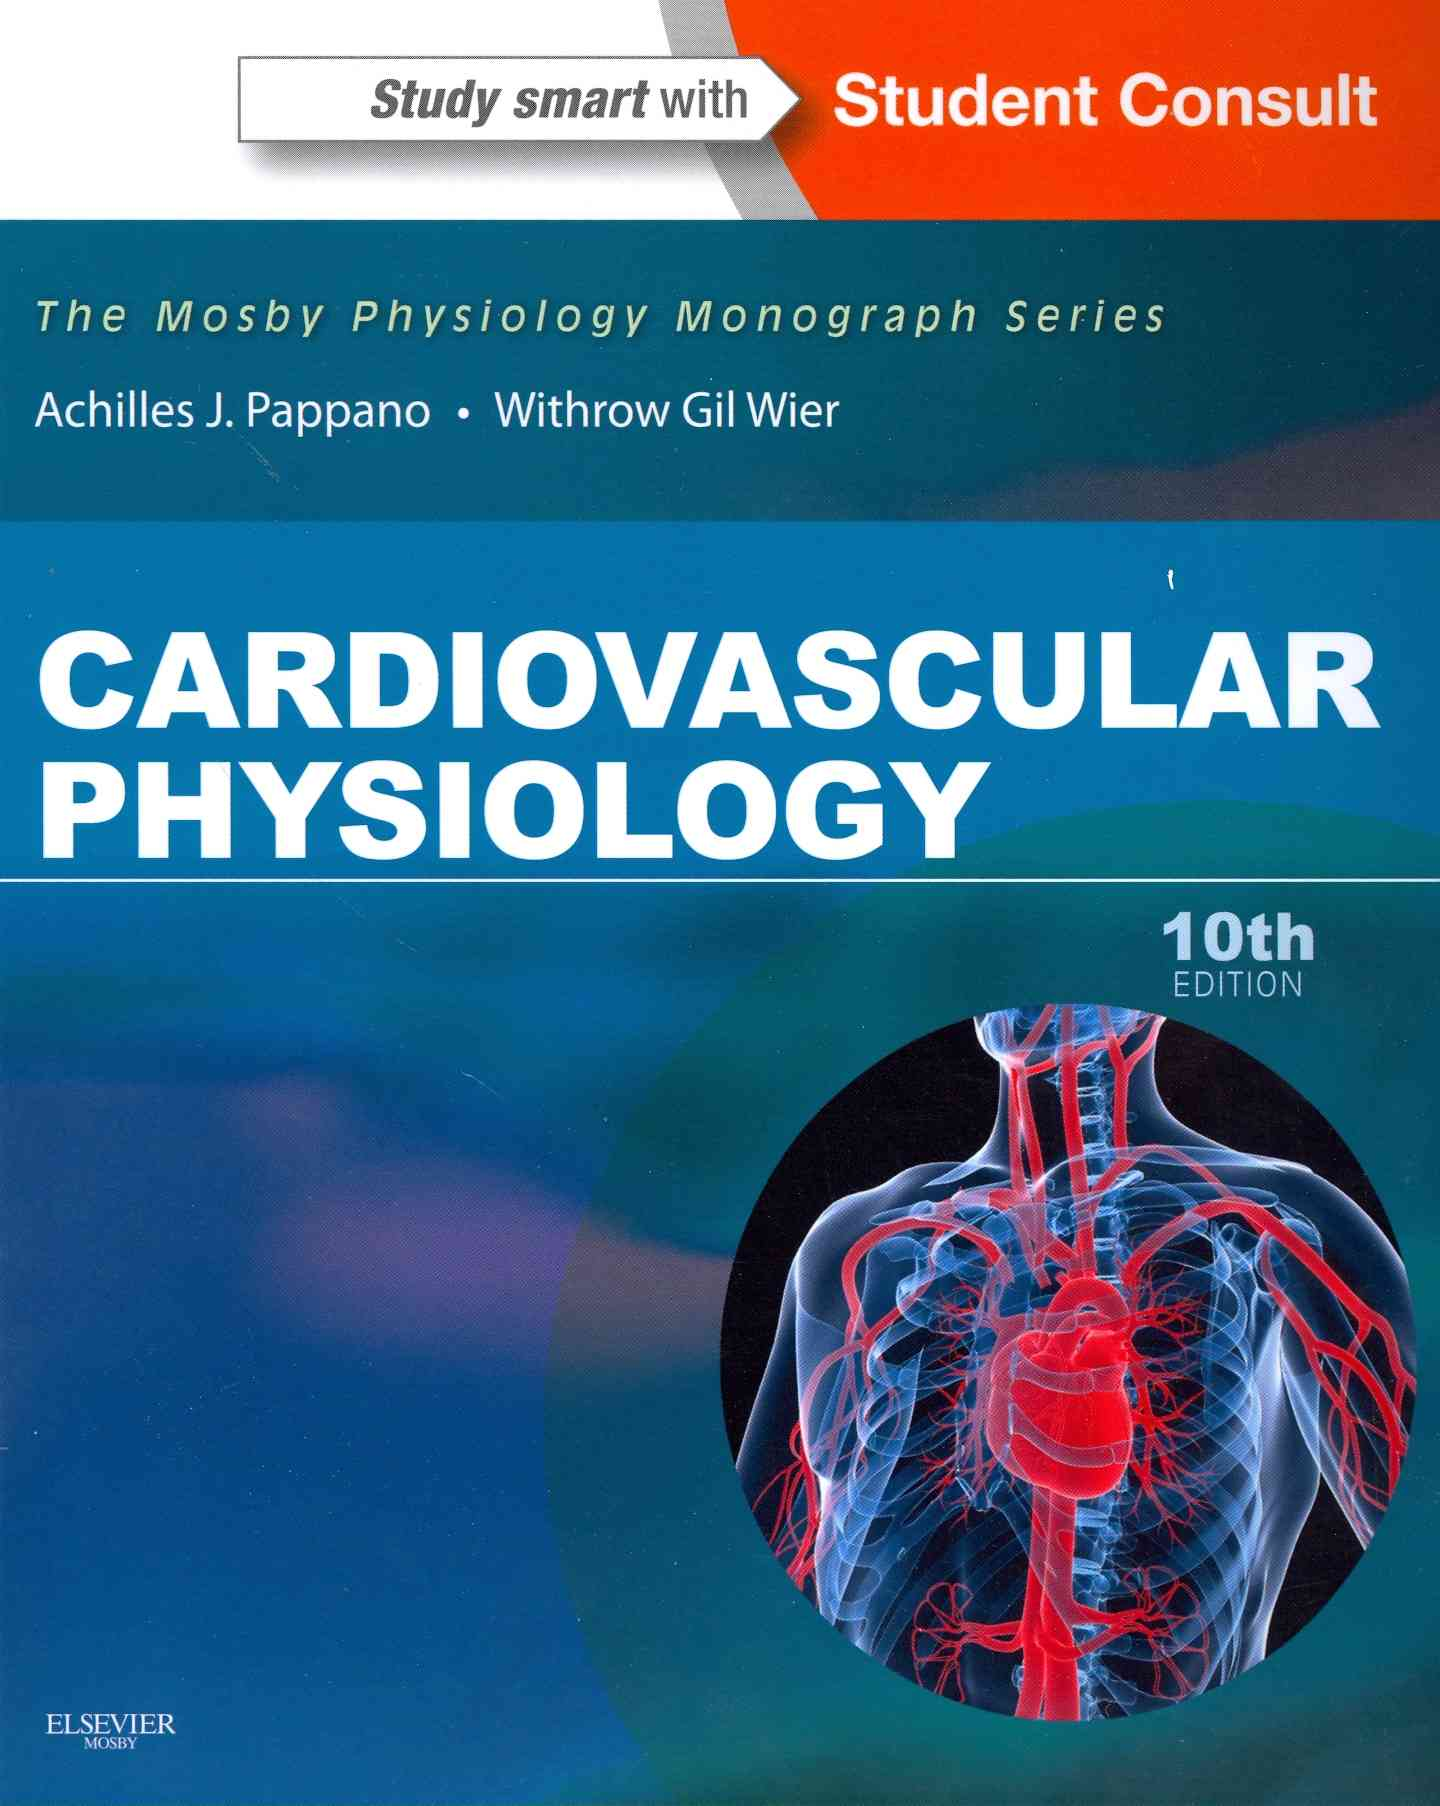 Cardiovascular Physiology By Pappano, Achilles J./ Wier, Withrow Gil